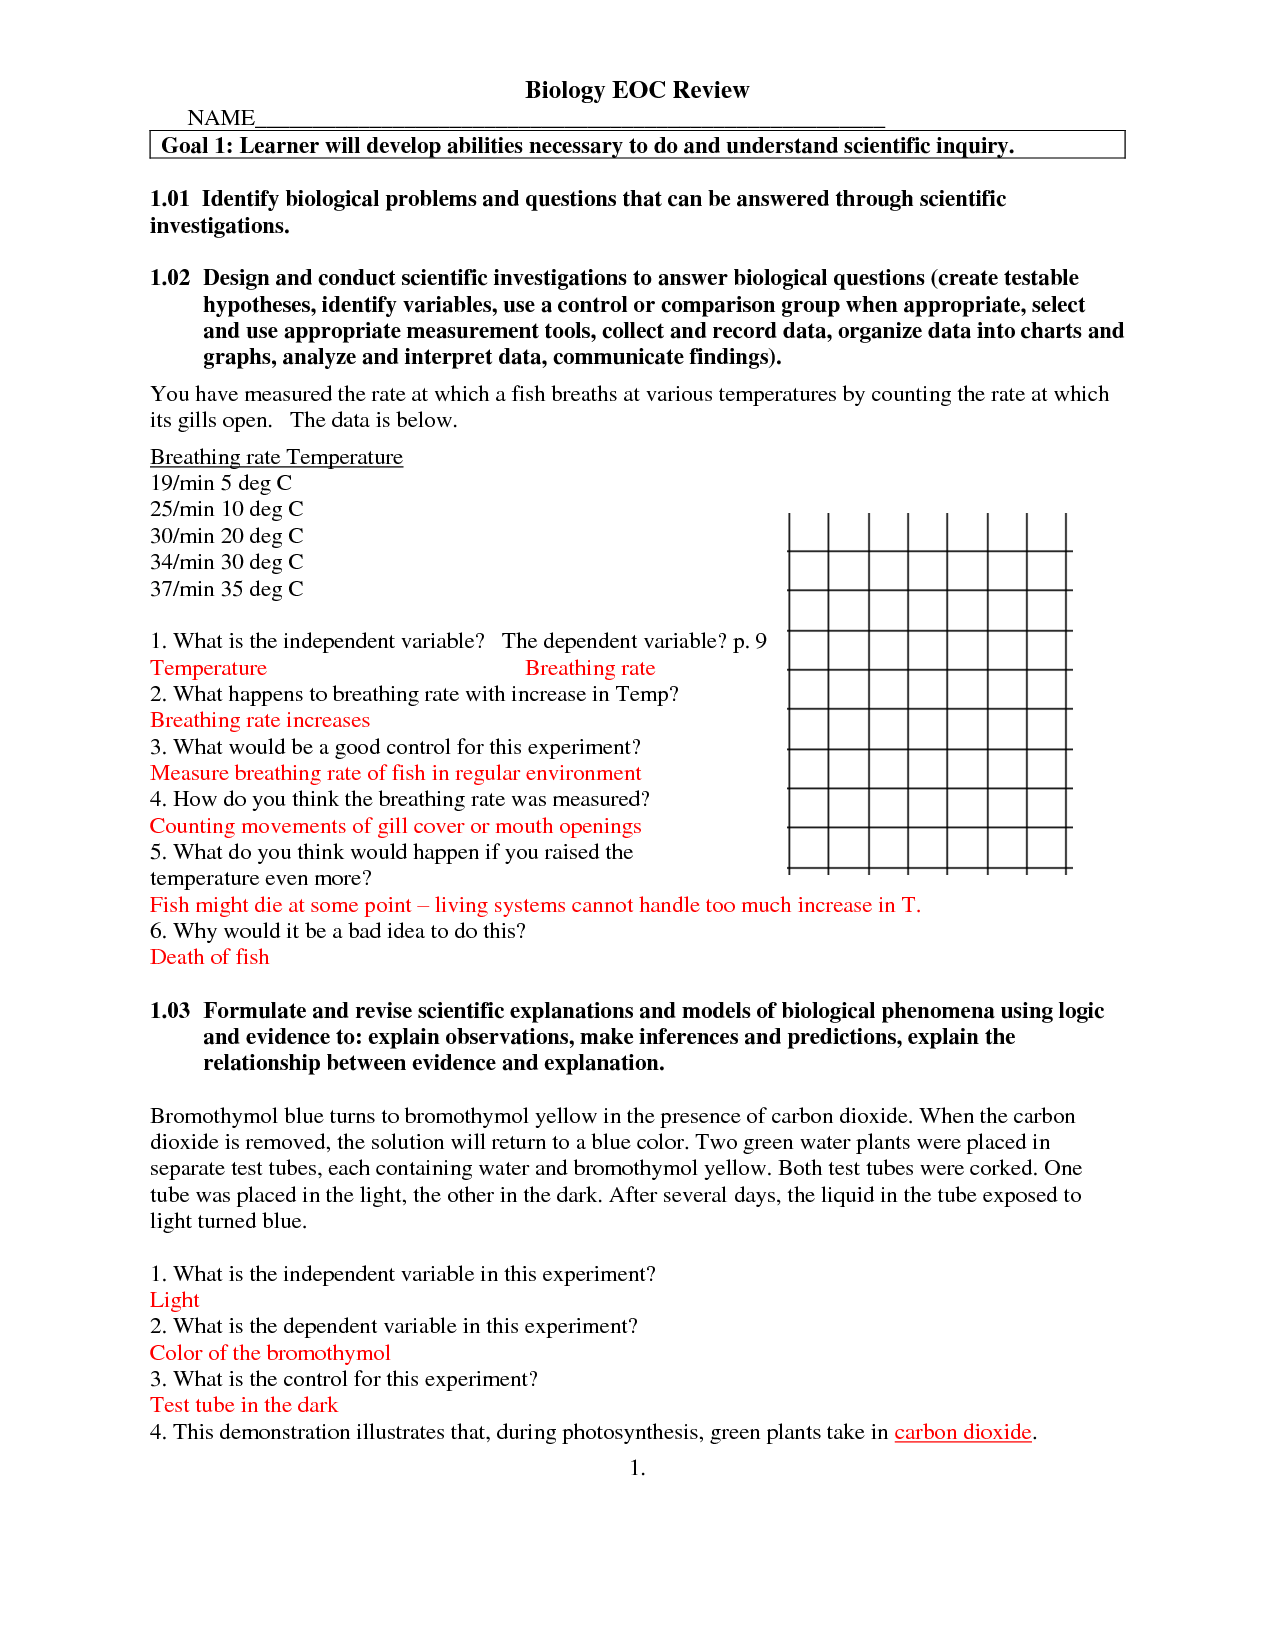 96 DNA AND REPLICATION WORKSHEET ANSWERS, DNA WORKSHEET ...